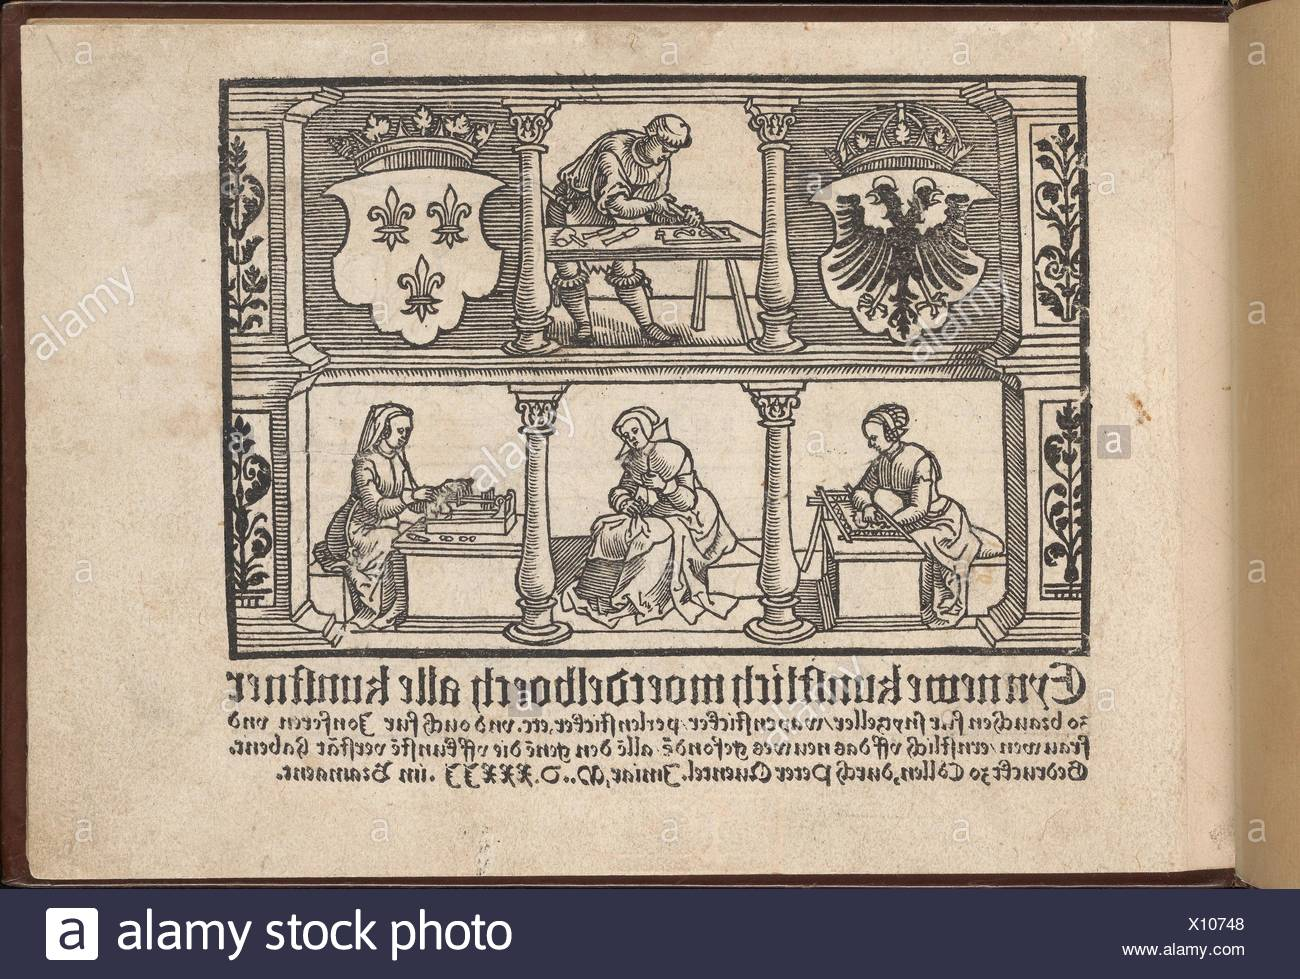 Eyn Newe kunstlich moetdelboech alle kunst. Publisher: Peter Quentel (German, active Cologne, 1518-46) , Cologne; Date: 1532; Medium: Woodcut; - Stock Image